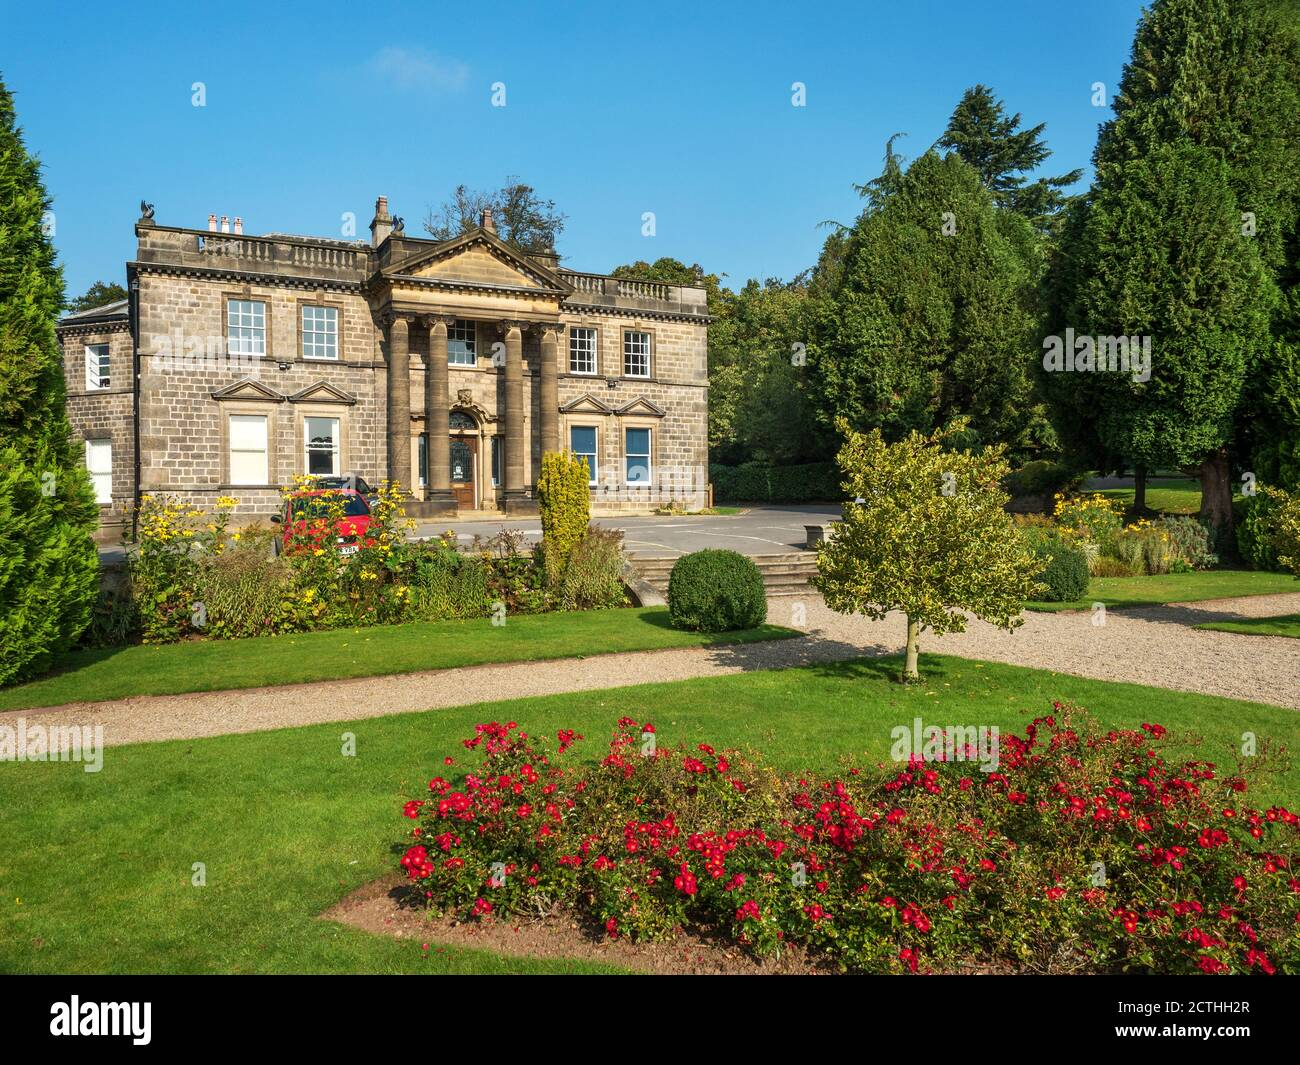 Conyngham Hall a grade II star listed building in Knaresborough North Yorkshire England Stock Photo